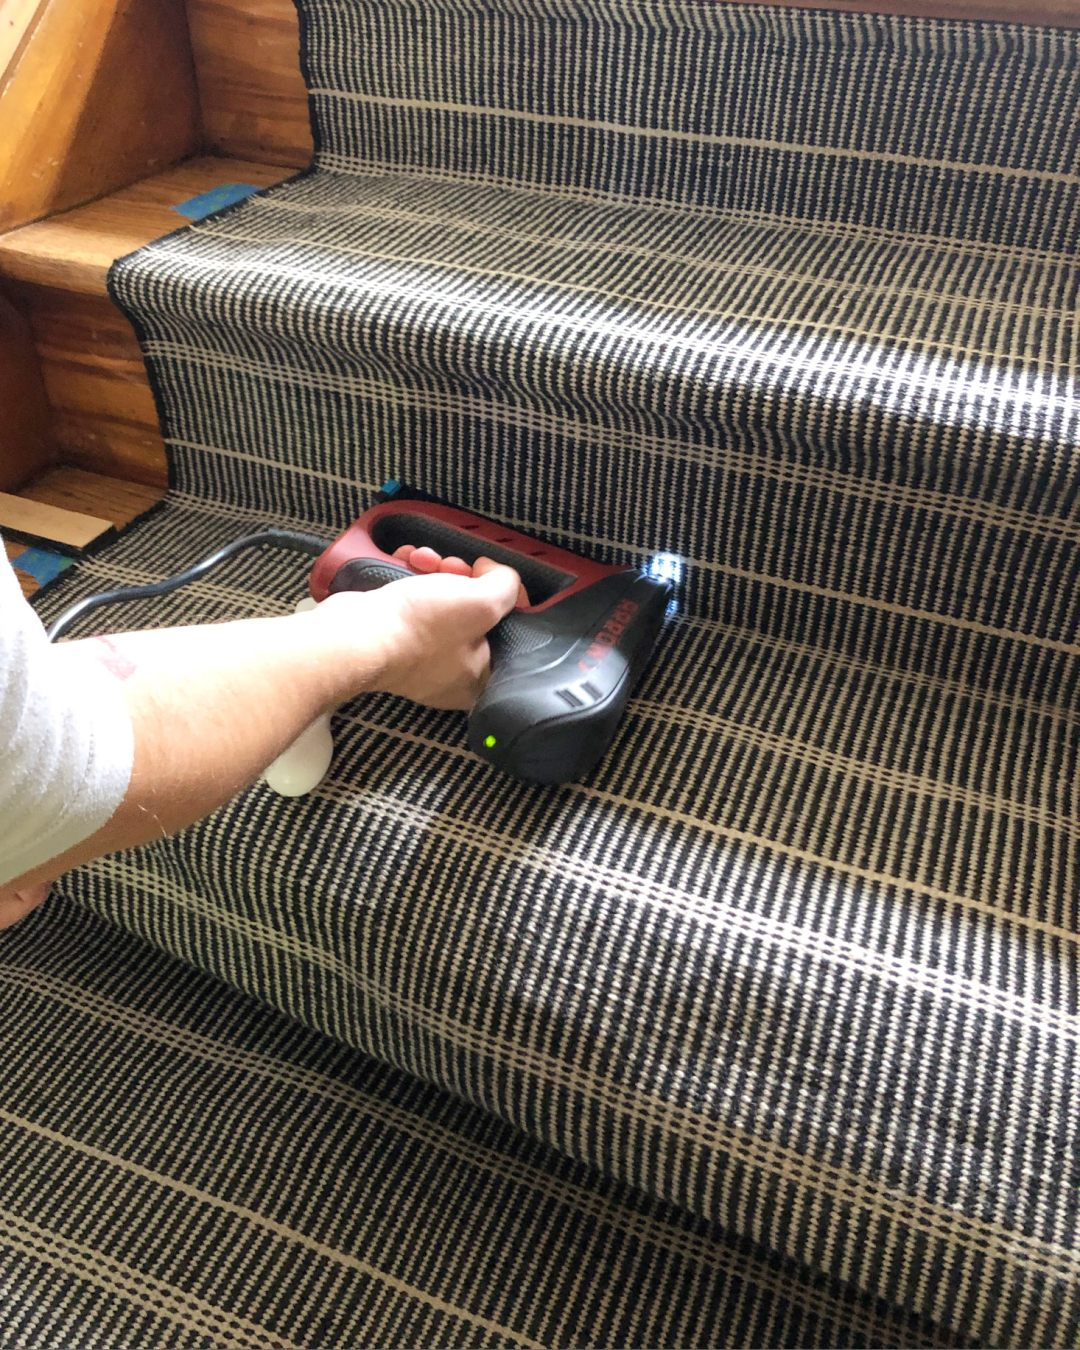 Using a staple gun to install a stair runner